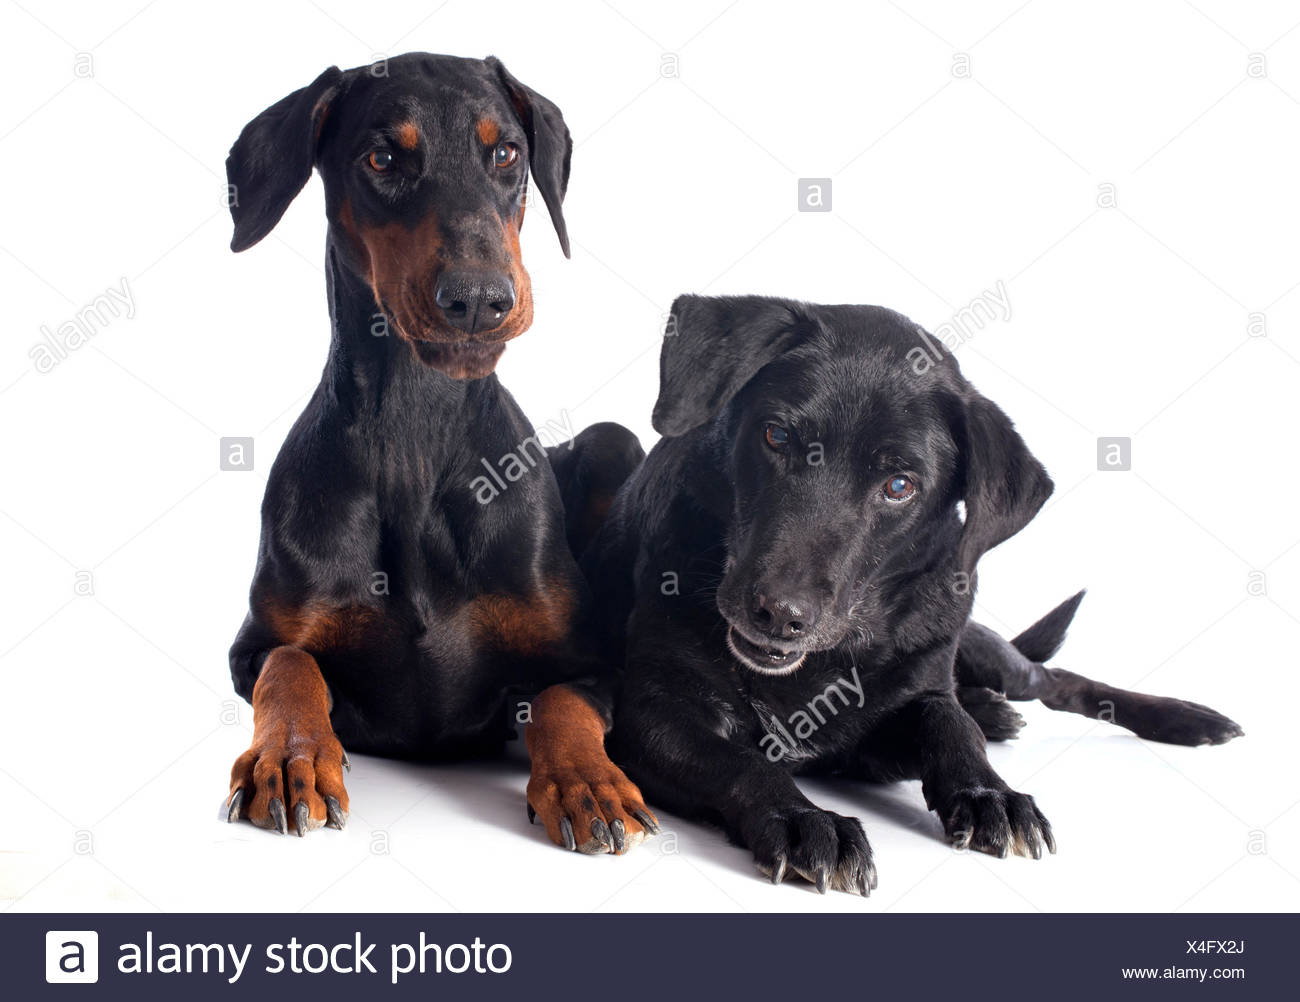 purebred  labrador retriever and dobermann in front of a white background - Stock Image